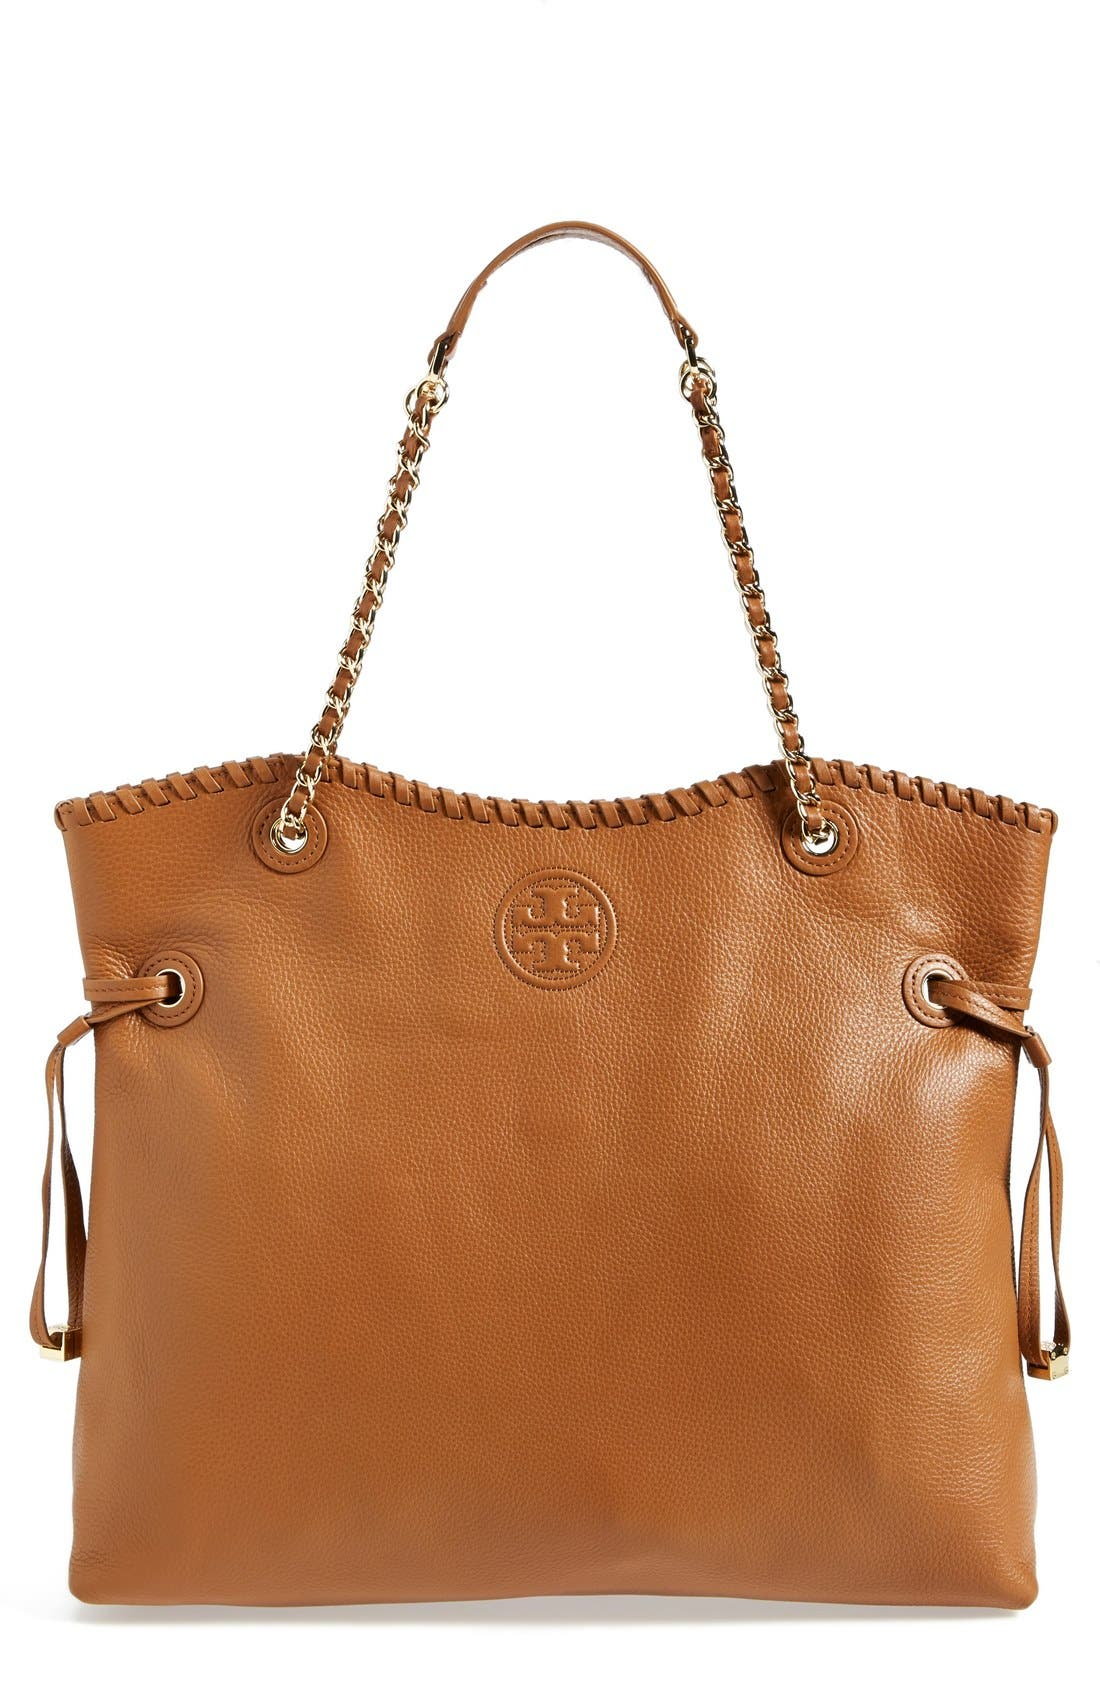 Main Image - Tory Burch 'Marion' Slouchy Tote